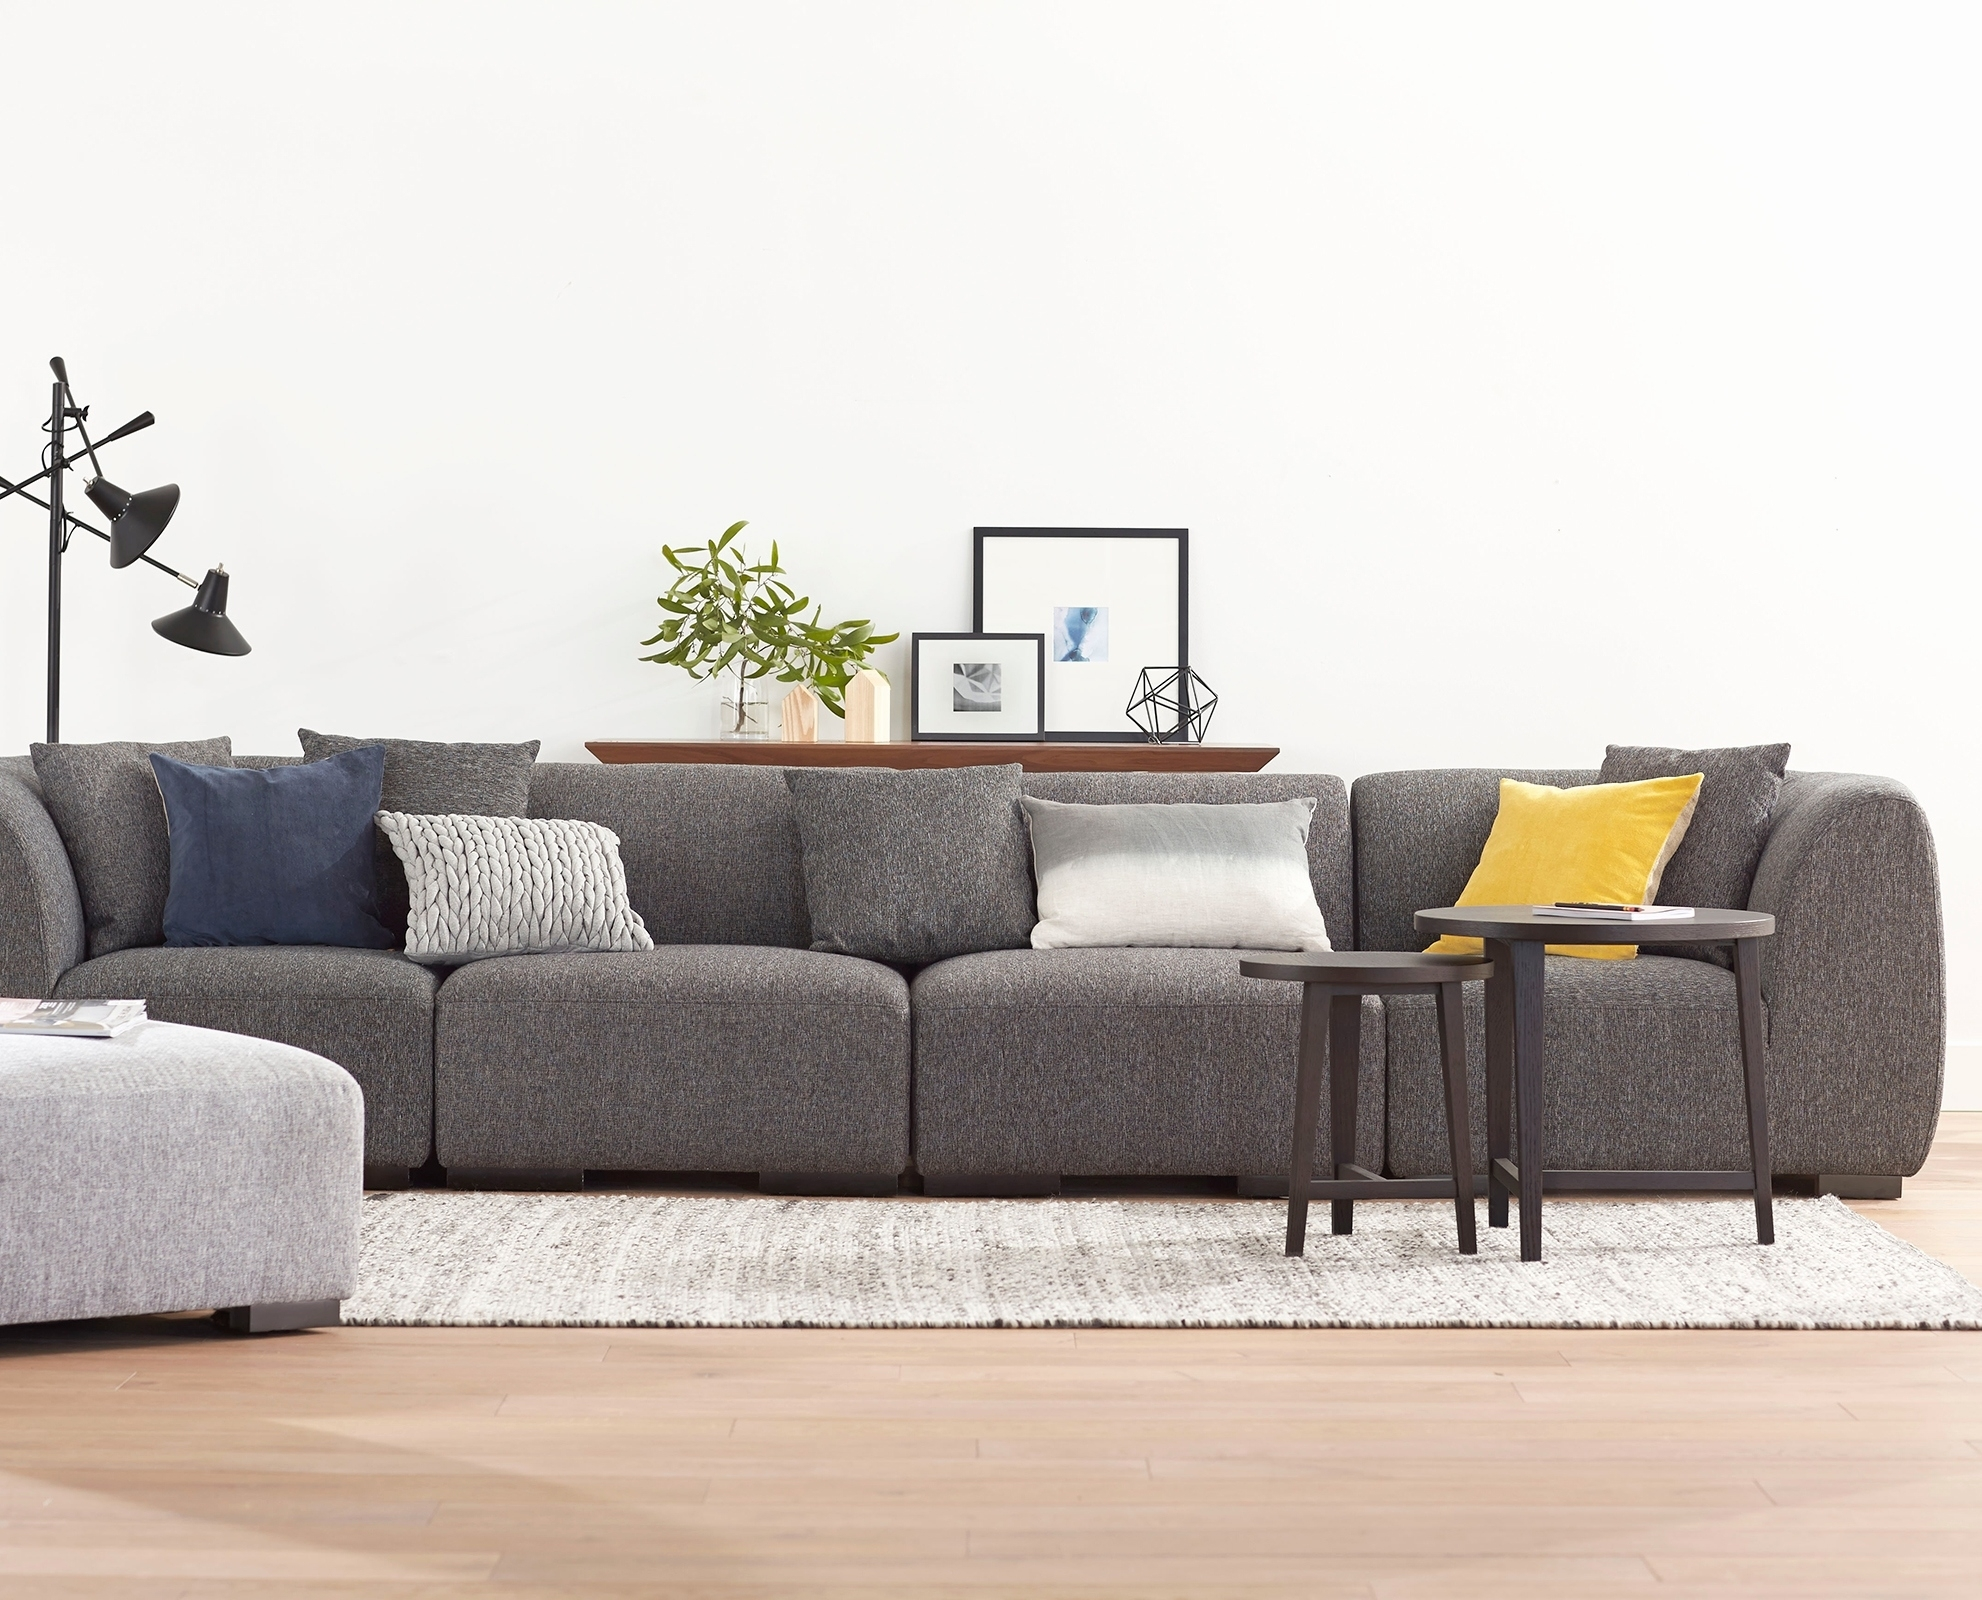 Fresh Sectional Sofa Beds For Small Spaces 2018 – Couches And Sofas Regarding Canada Sectional Sofas For Small Spaces (Image 3 of 10)